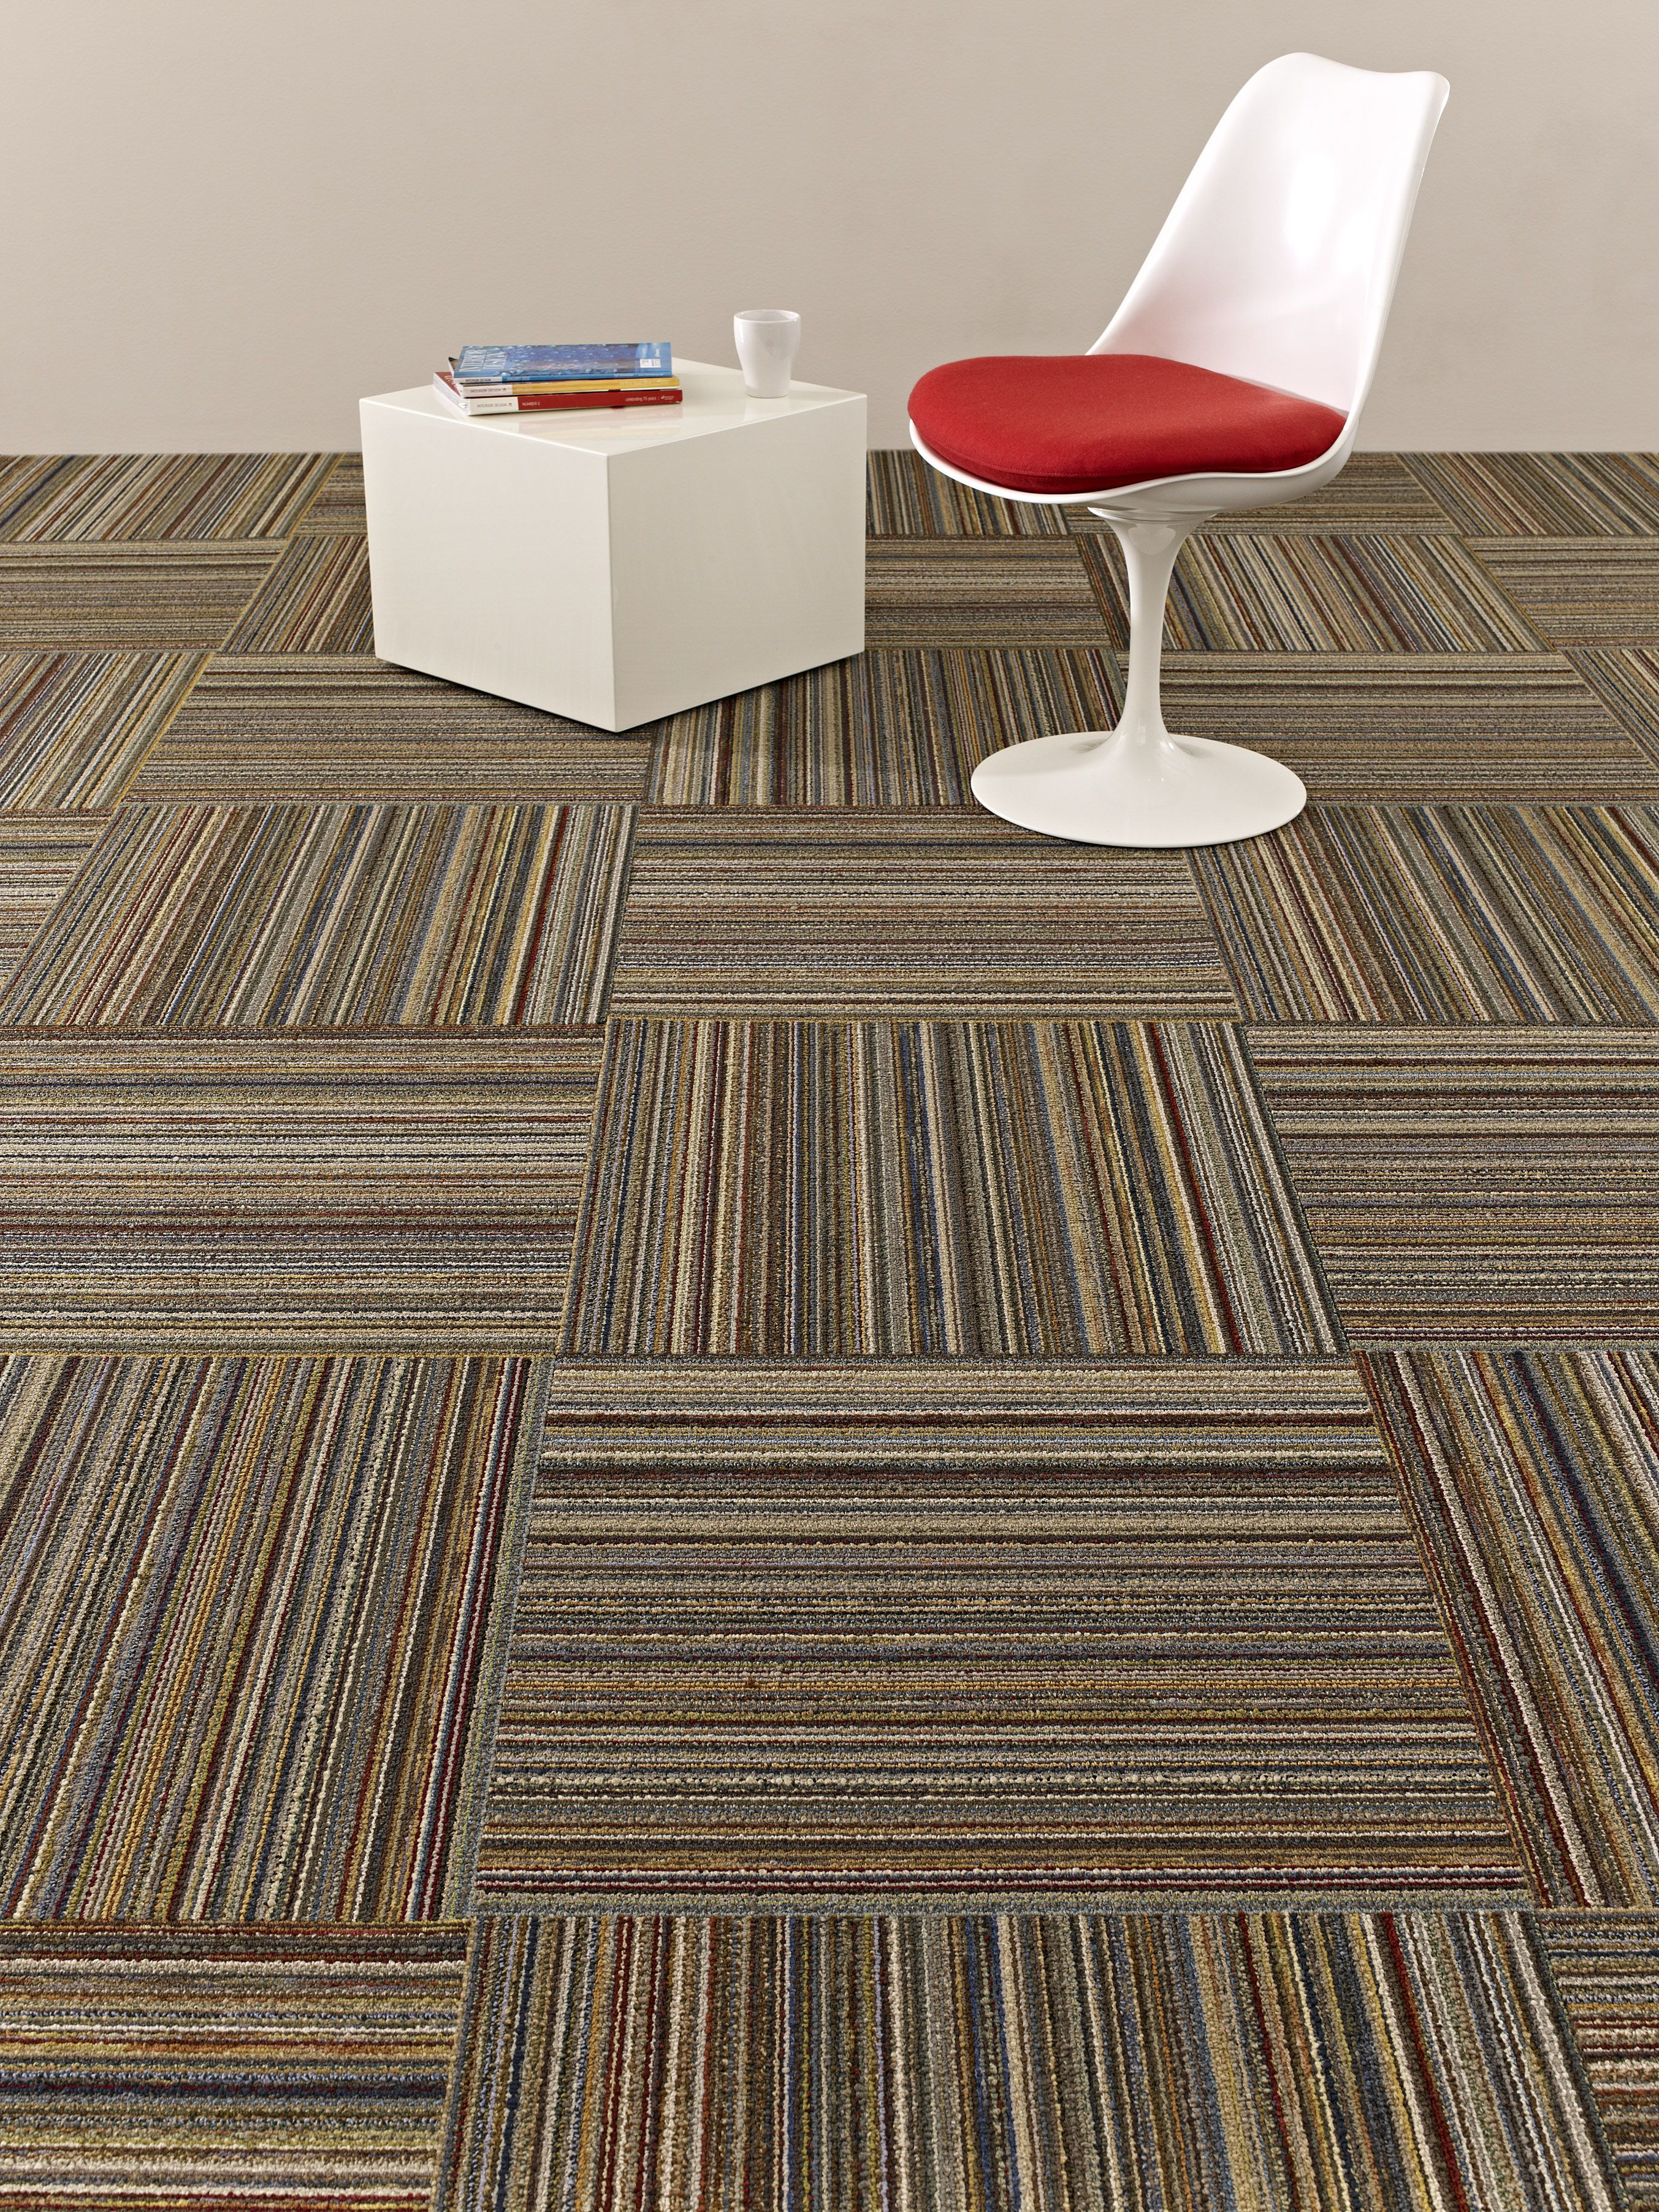 Carpet Tiles Are Excellent Flooring Options For Homes Retail Stores Sports Facilities Offices Trad Carpet Tiles Living Room Tiles Modular Carpet Tiles